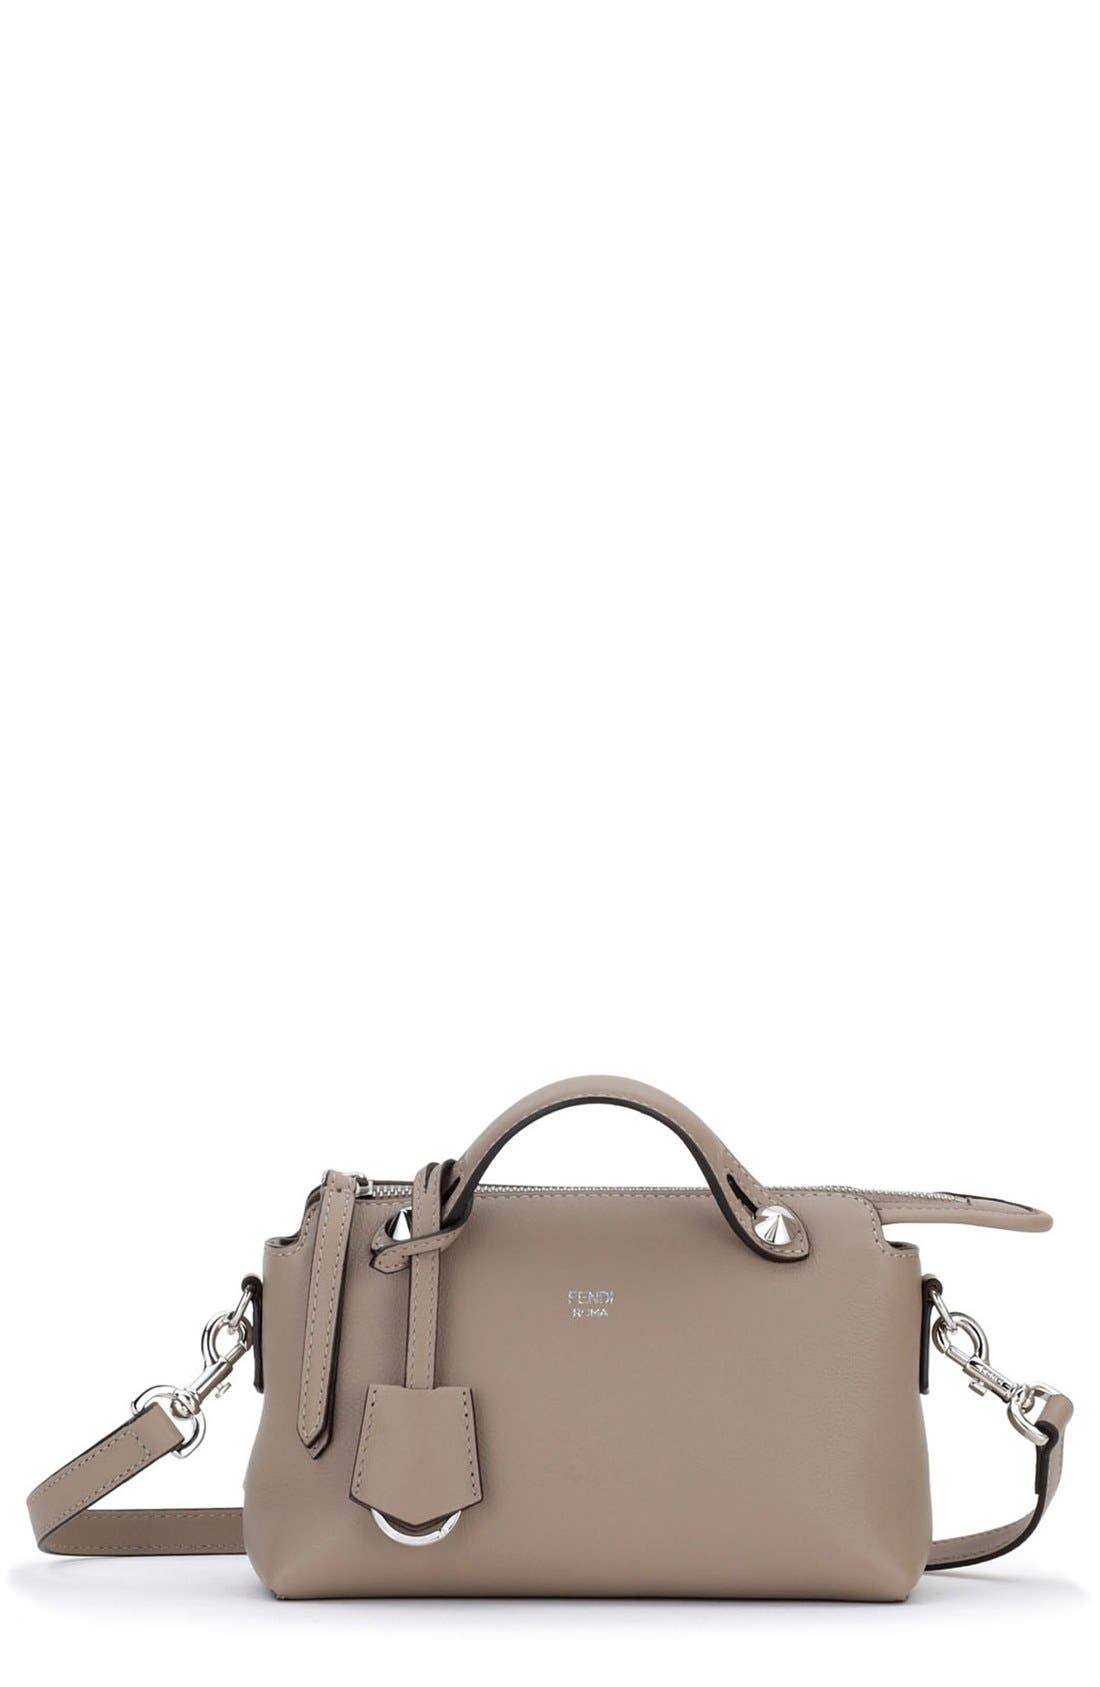 Alternate Image 1 Selected - Fendi 'Mini By the Way' Convertible Leather Crossbody Bag